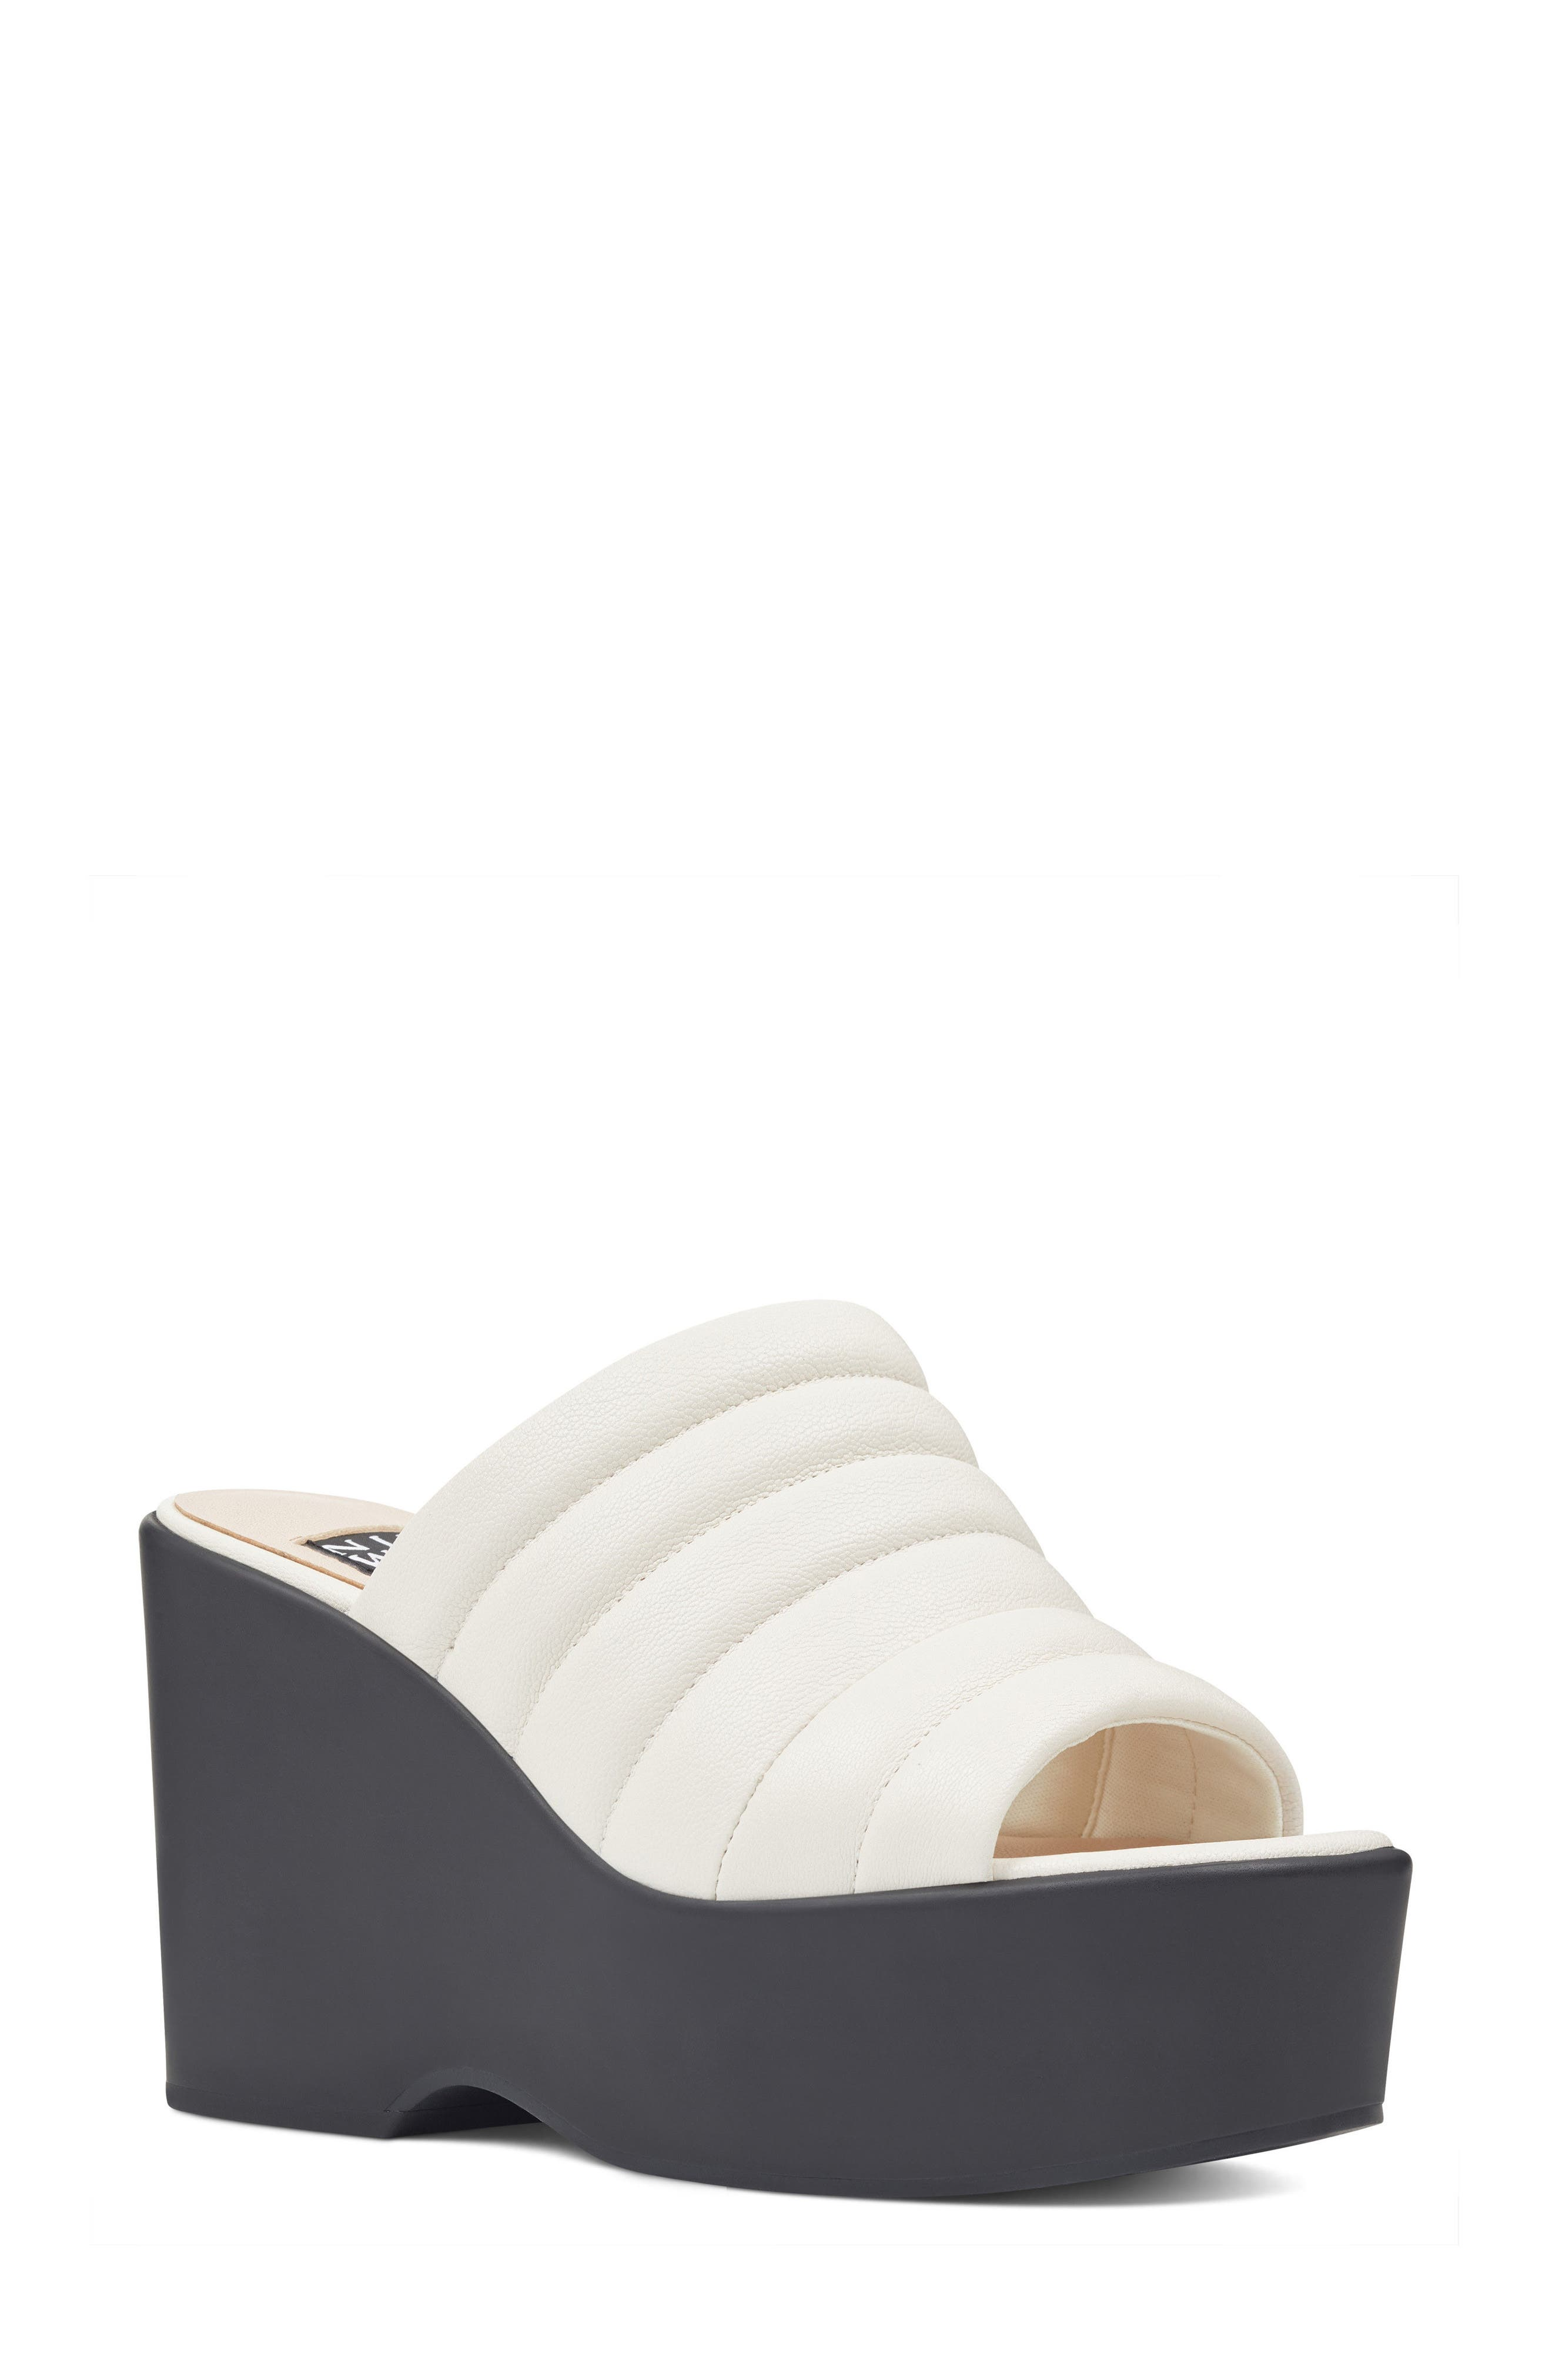 Nine West Millie - 40th Anniversary Capsule Collection Platform Wedge (Women)